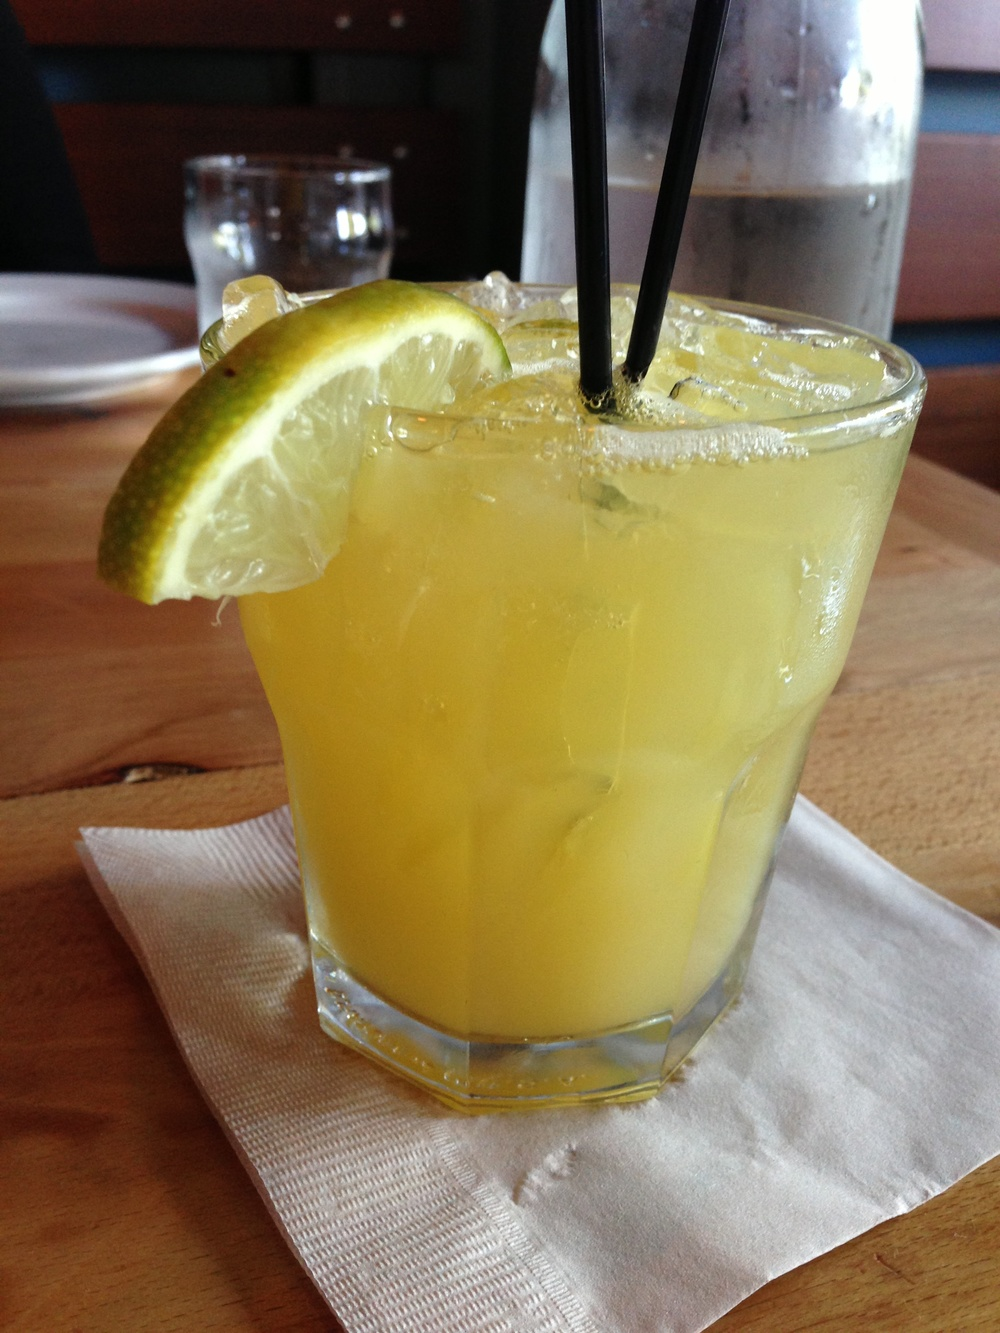 The Blue Agave margarita is sweet and sour.